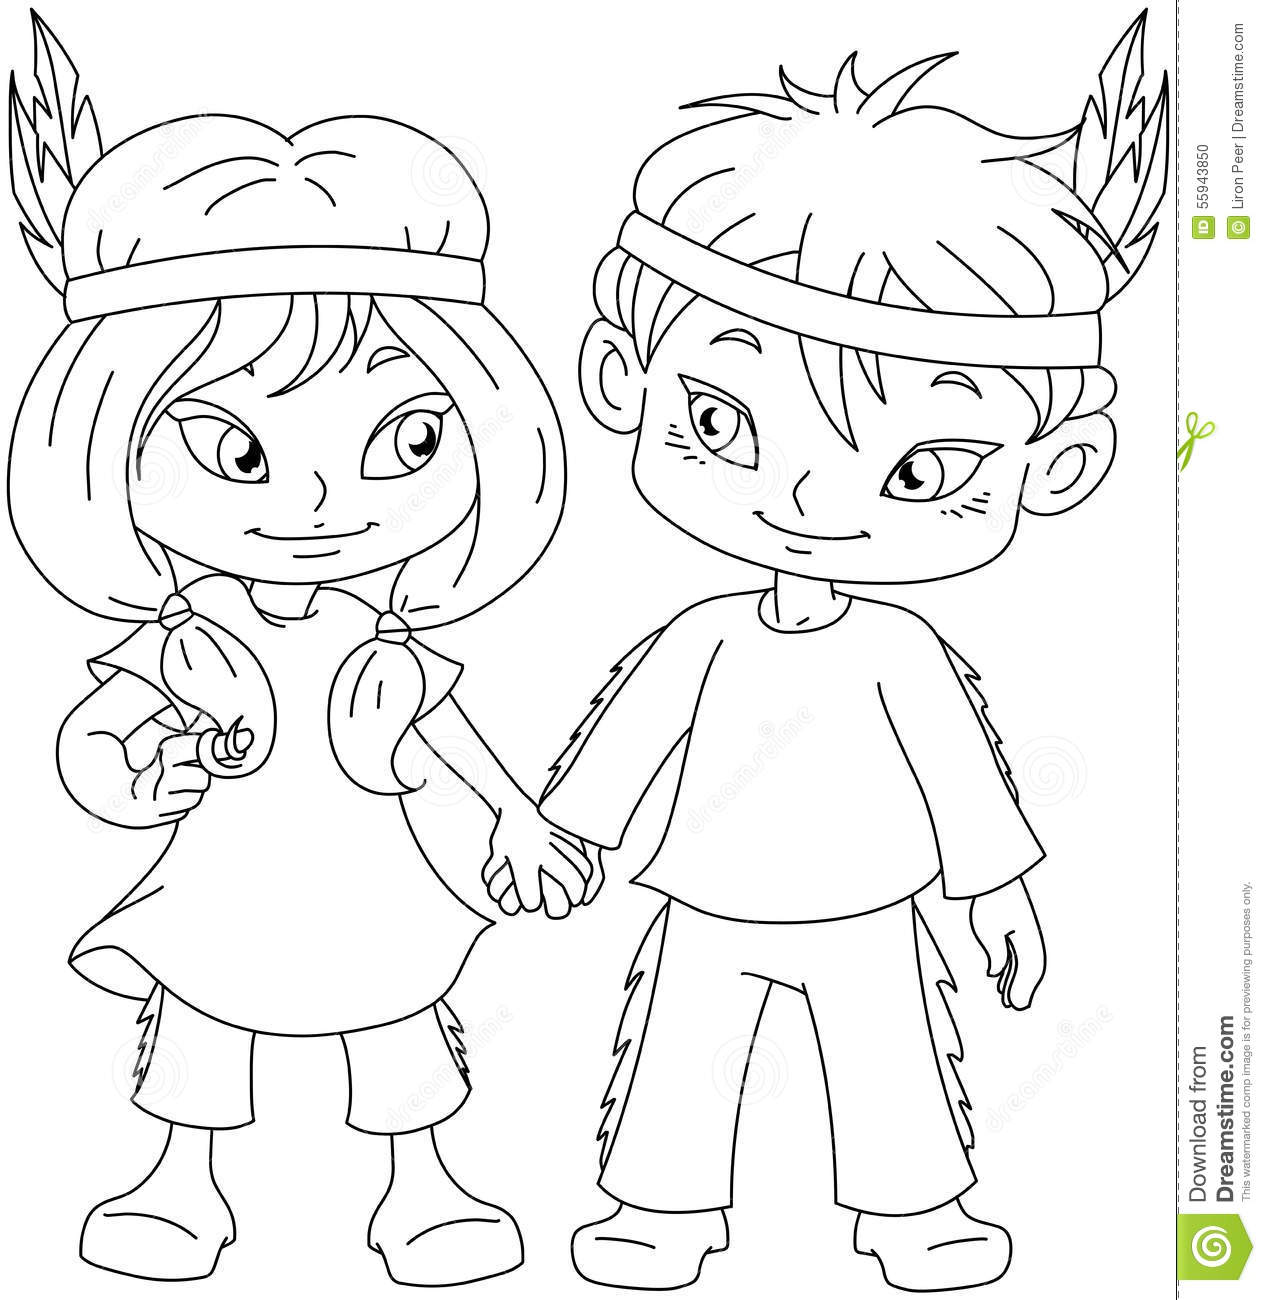 indian boy and girl holding hands for thanksgiving coloring page - Girl Indian Coloring Pages